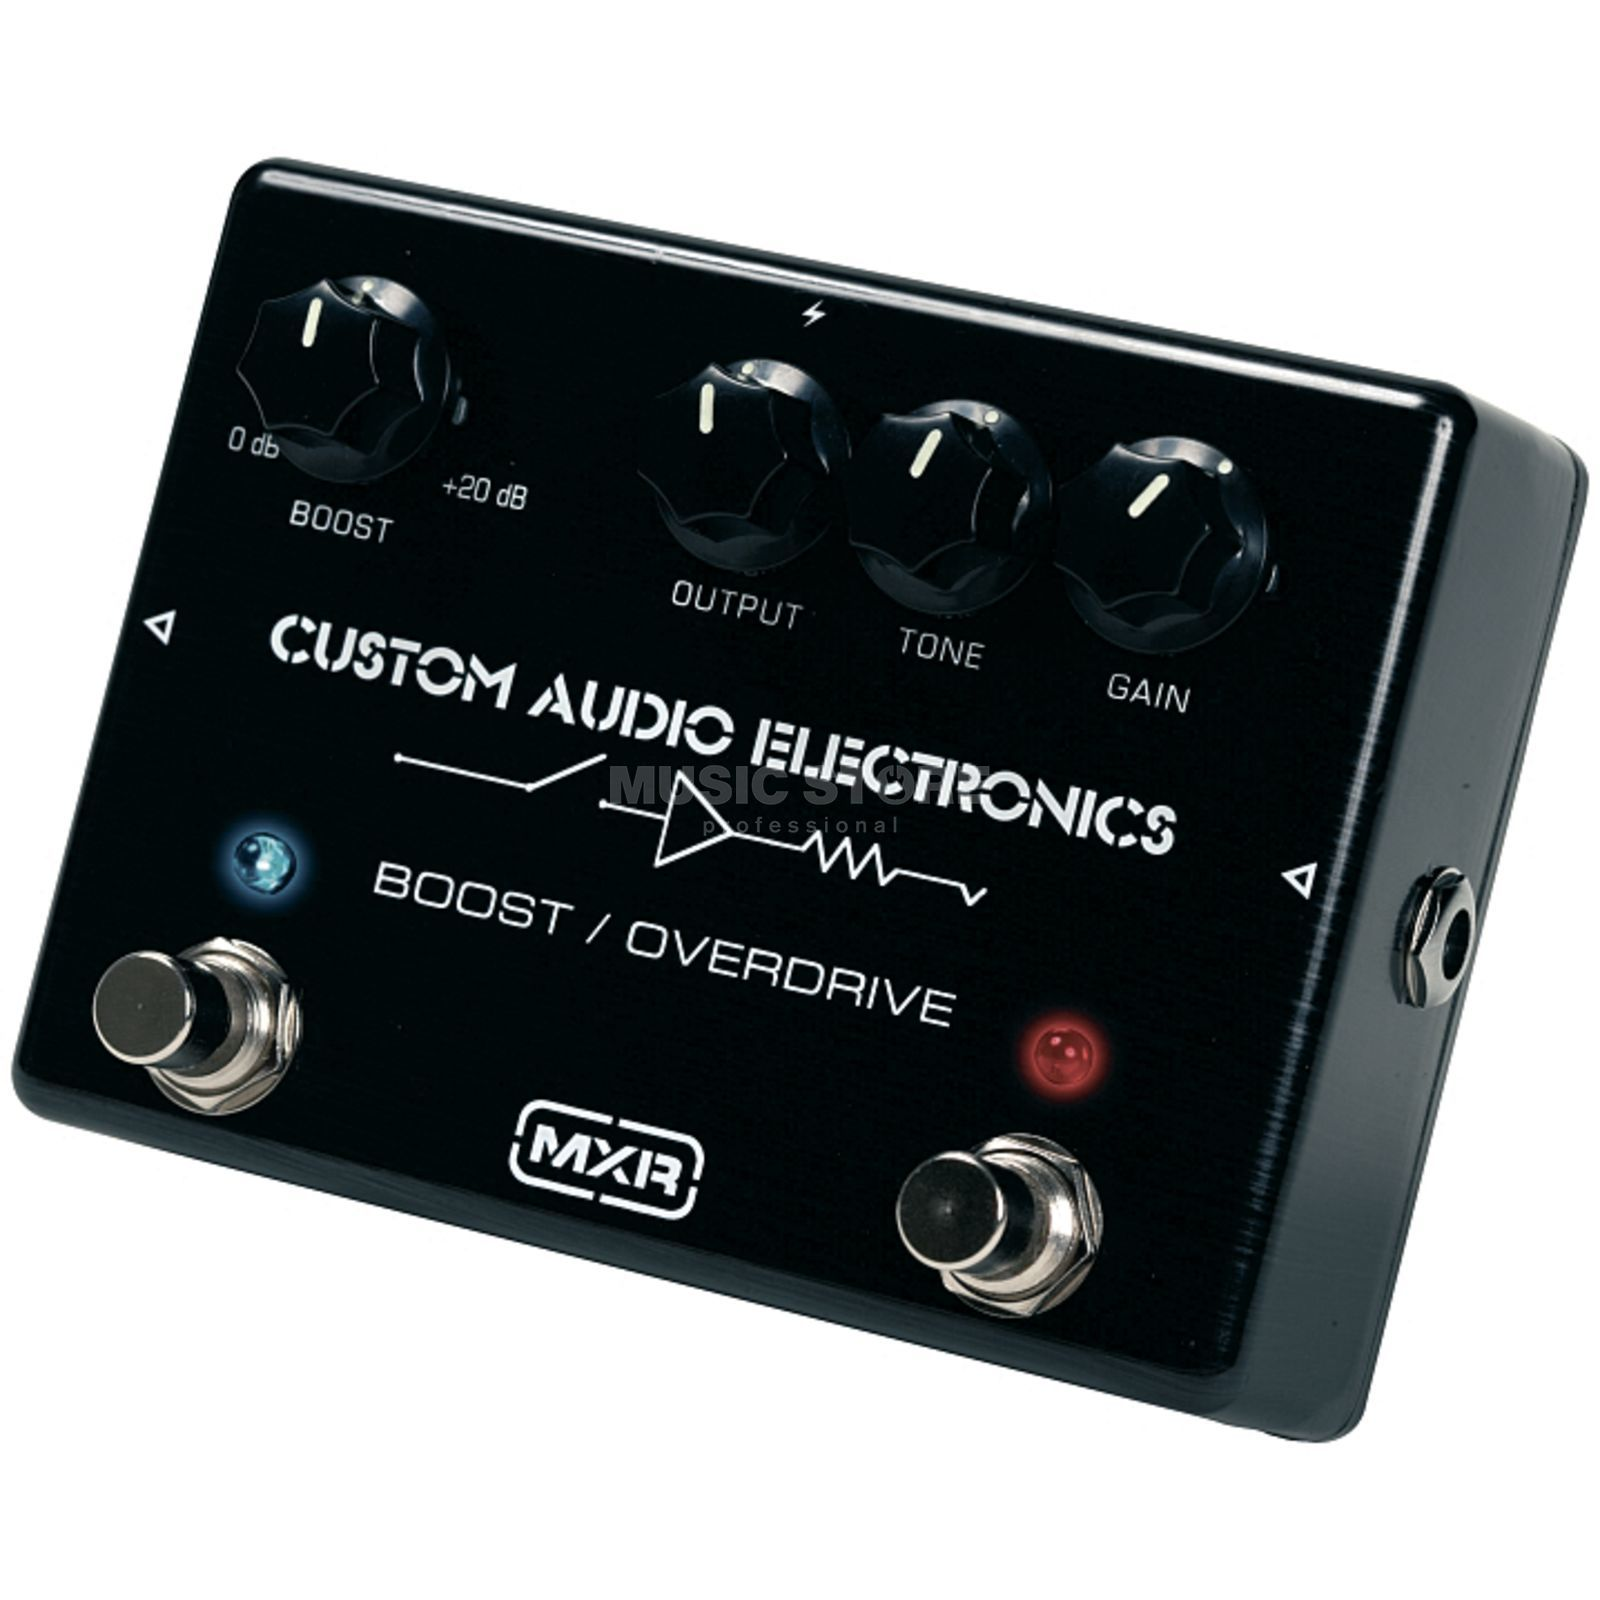 MXR MC402 Boost/Overdrive Custom Audio Electronics Produktbild